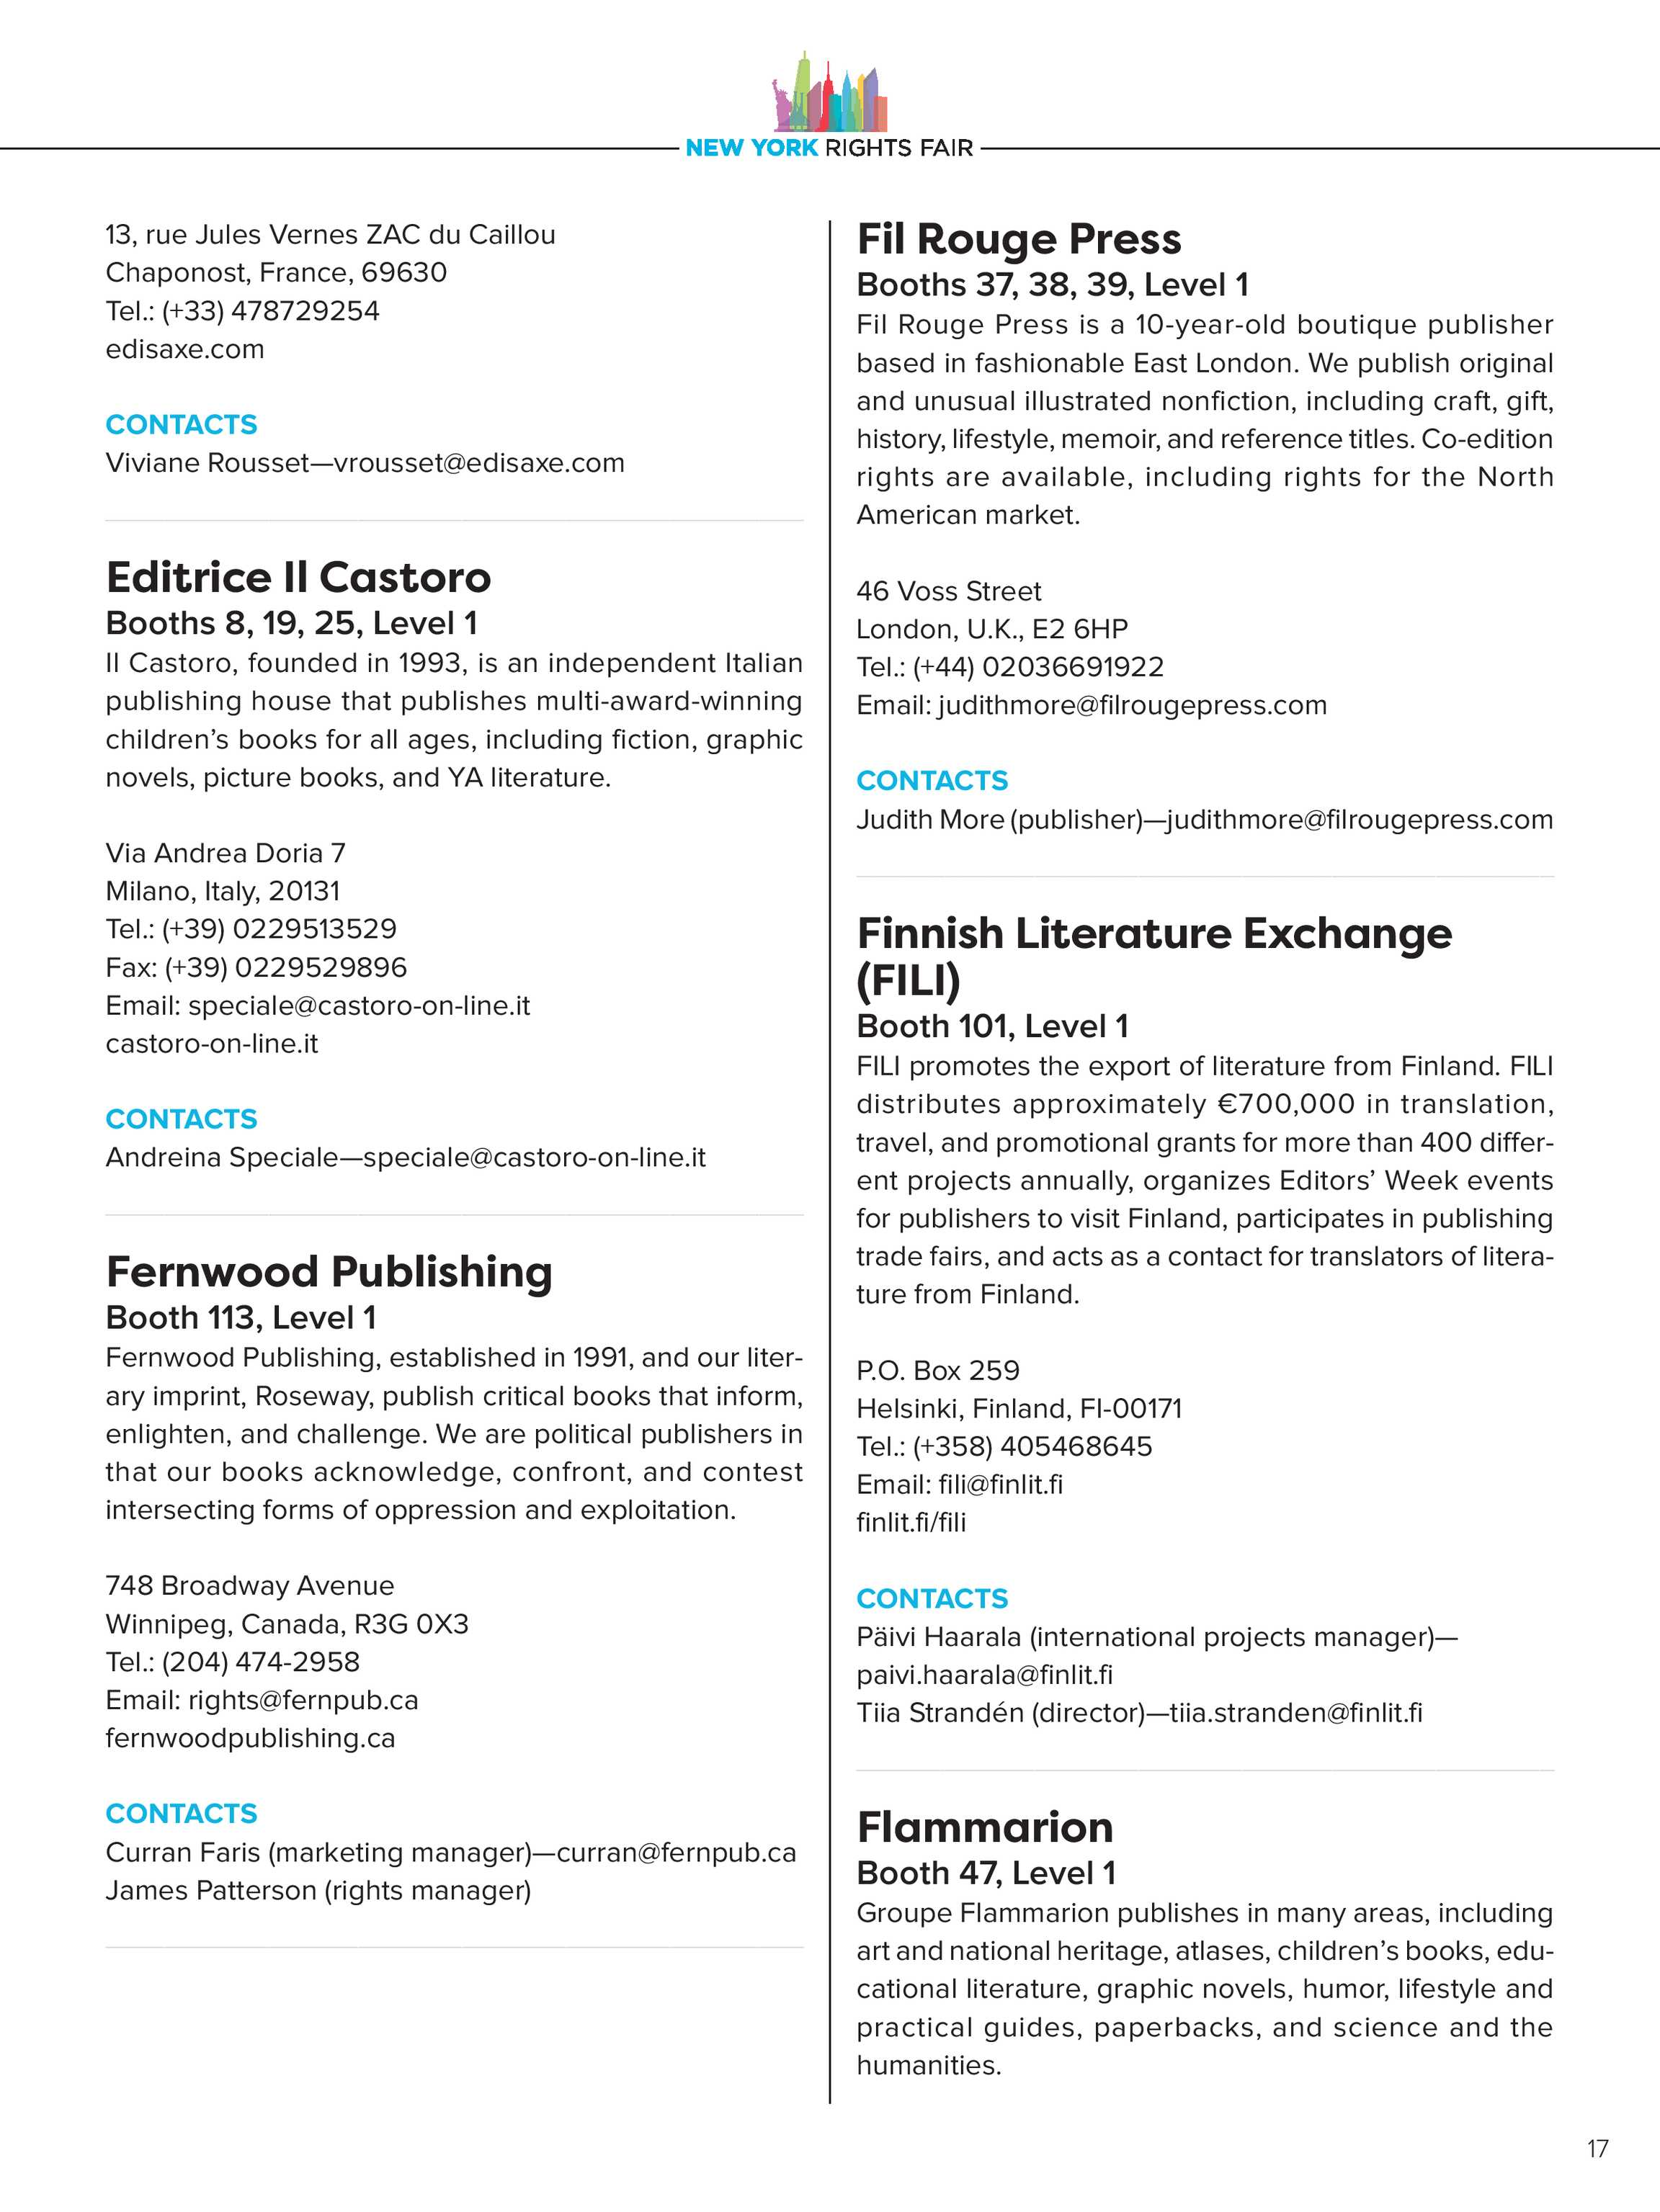 Publishers Weekly - NYRF Directory - page 17